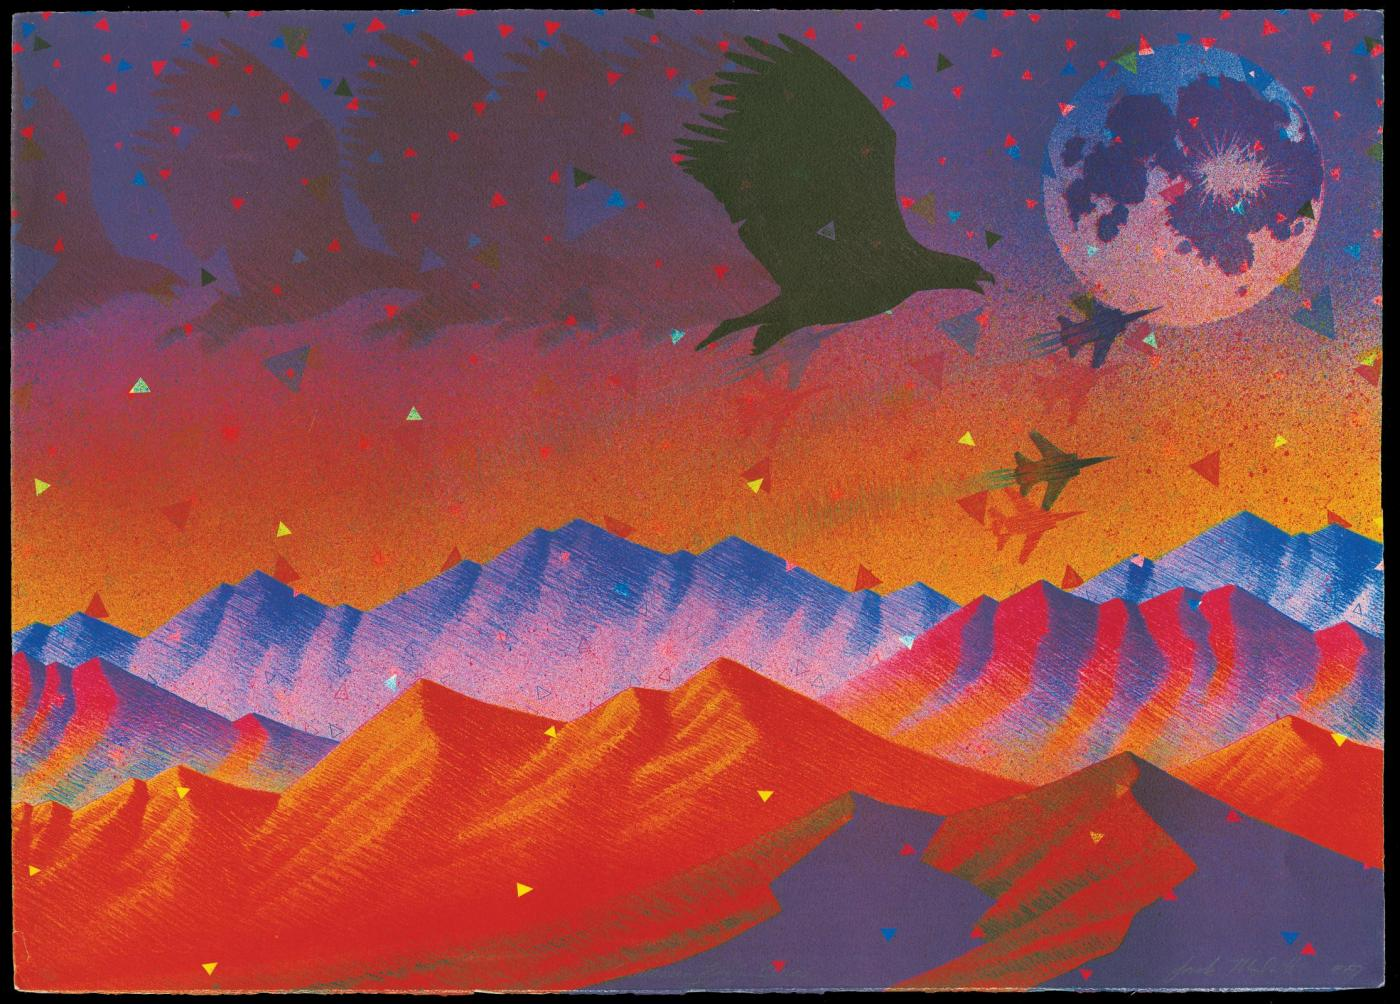 Screaming Eagle Blues, 1989, Offset lithograph, 21 x 30 inches